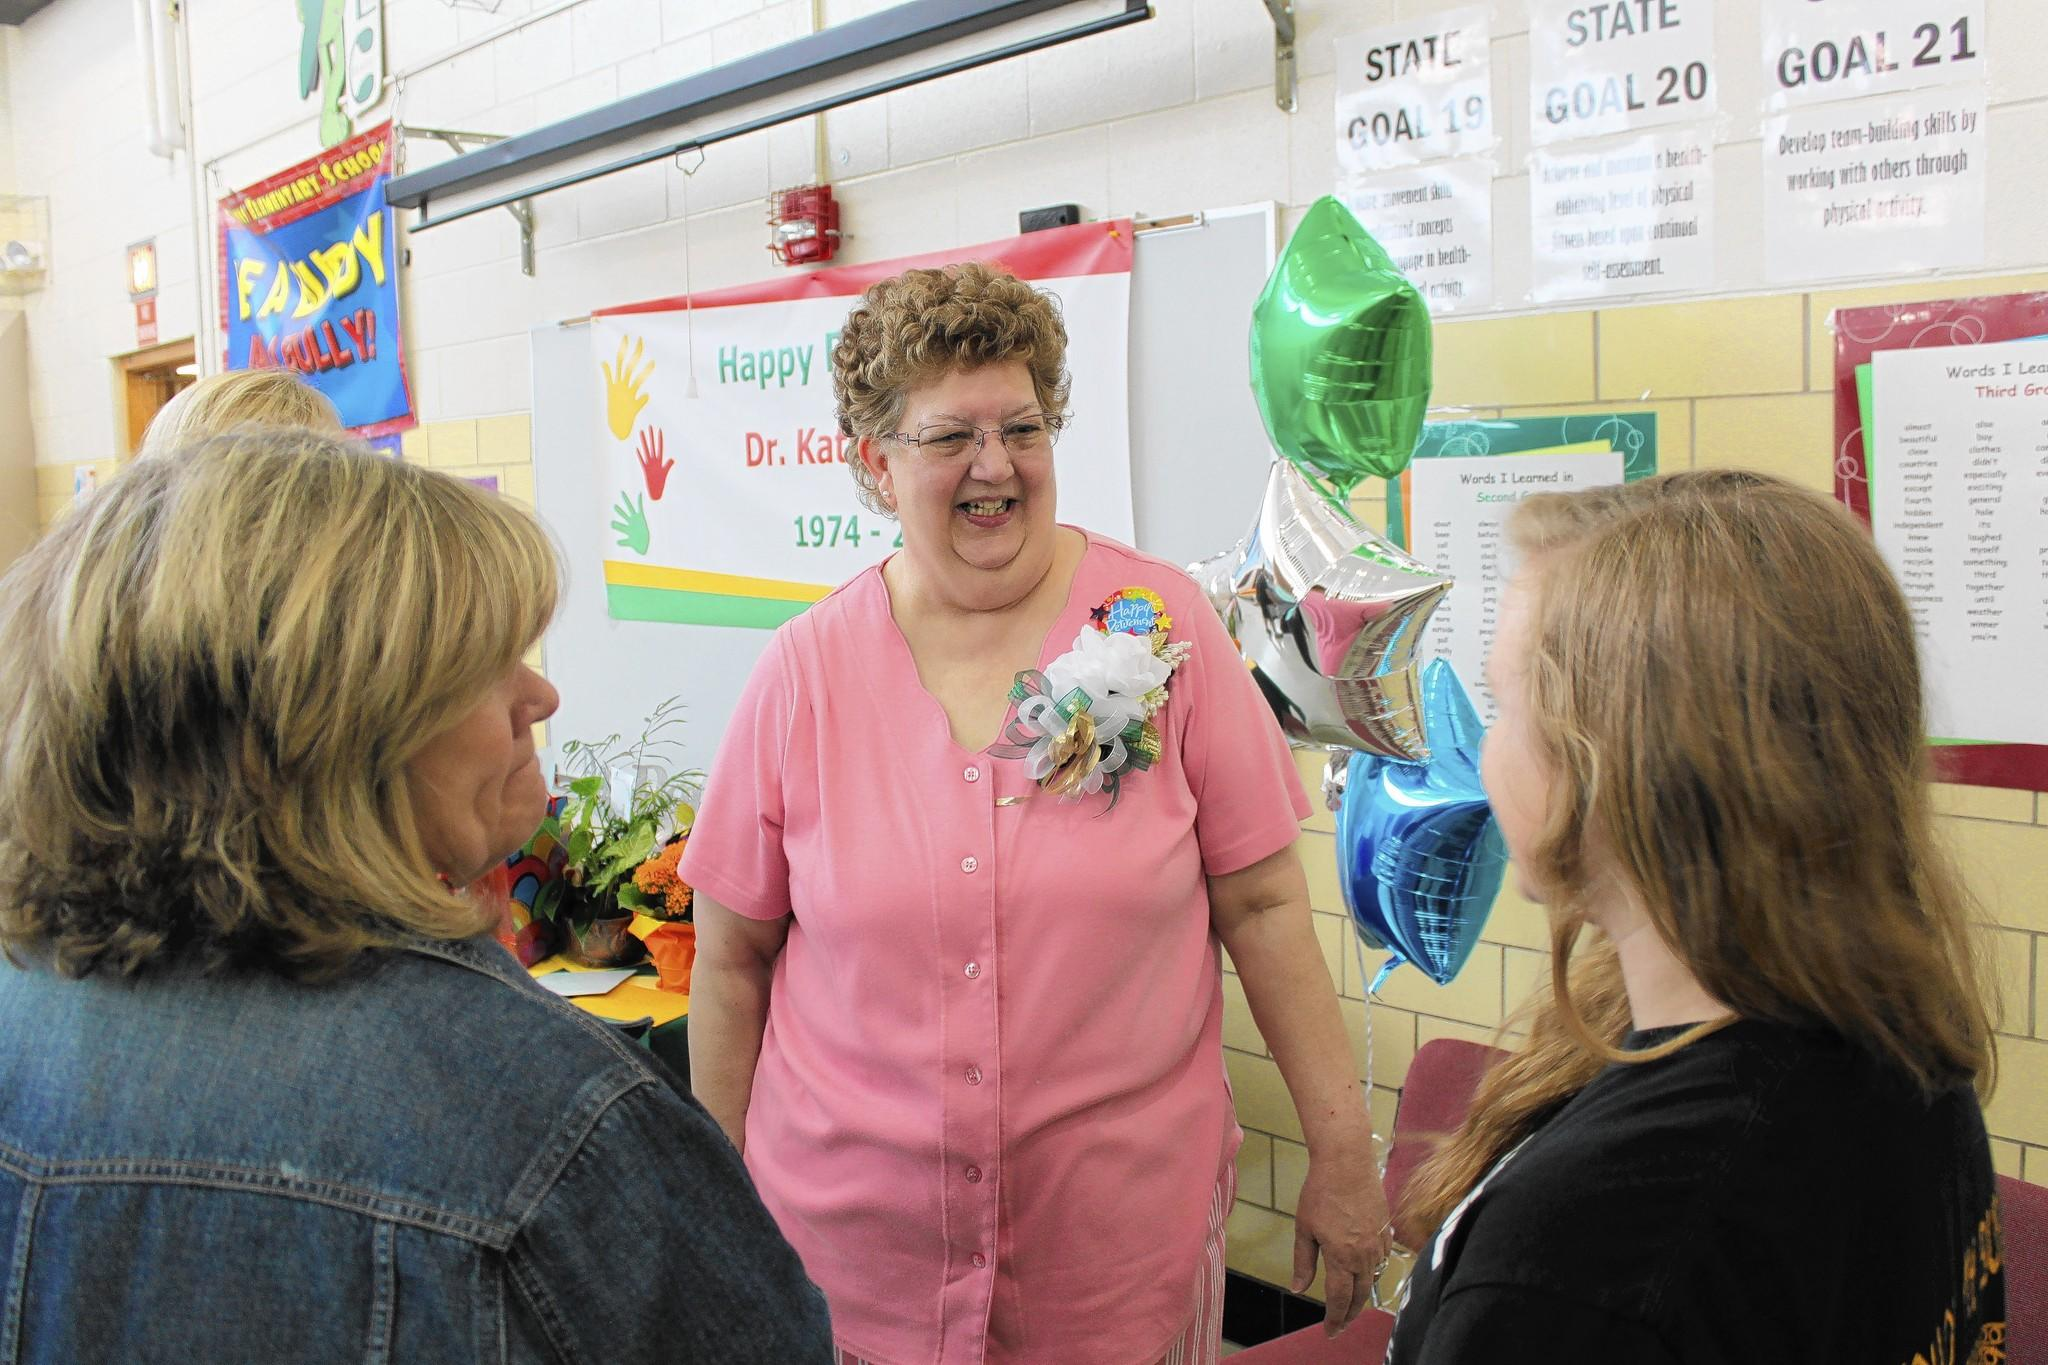 Kathy Baxter will retire after 40 years at Crystal Lawns Elementary School.